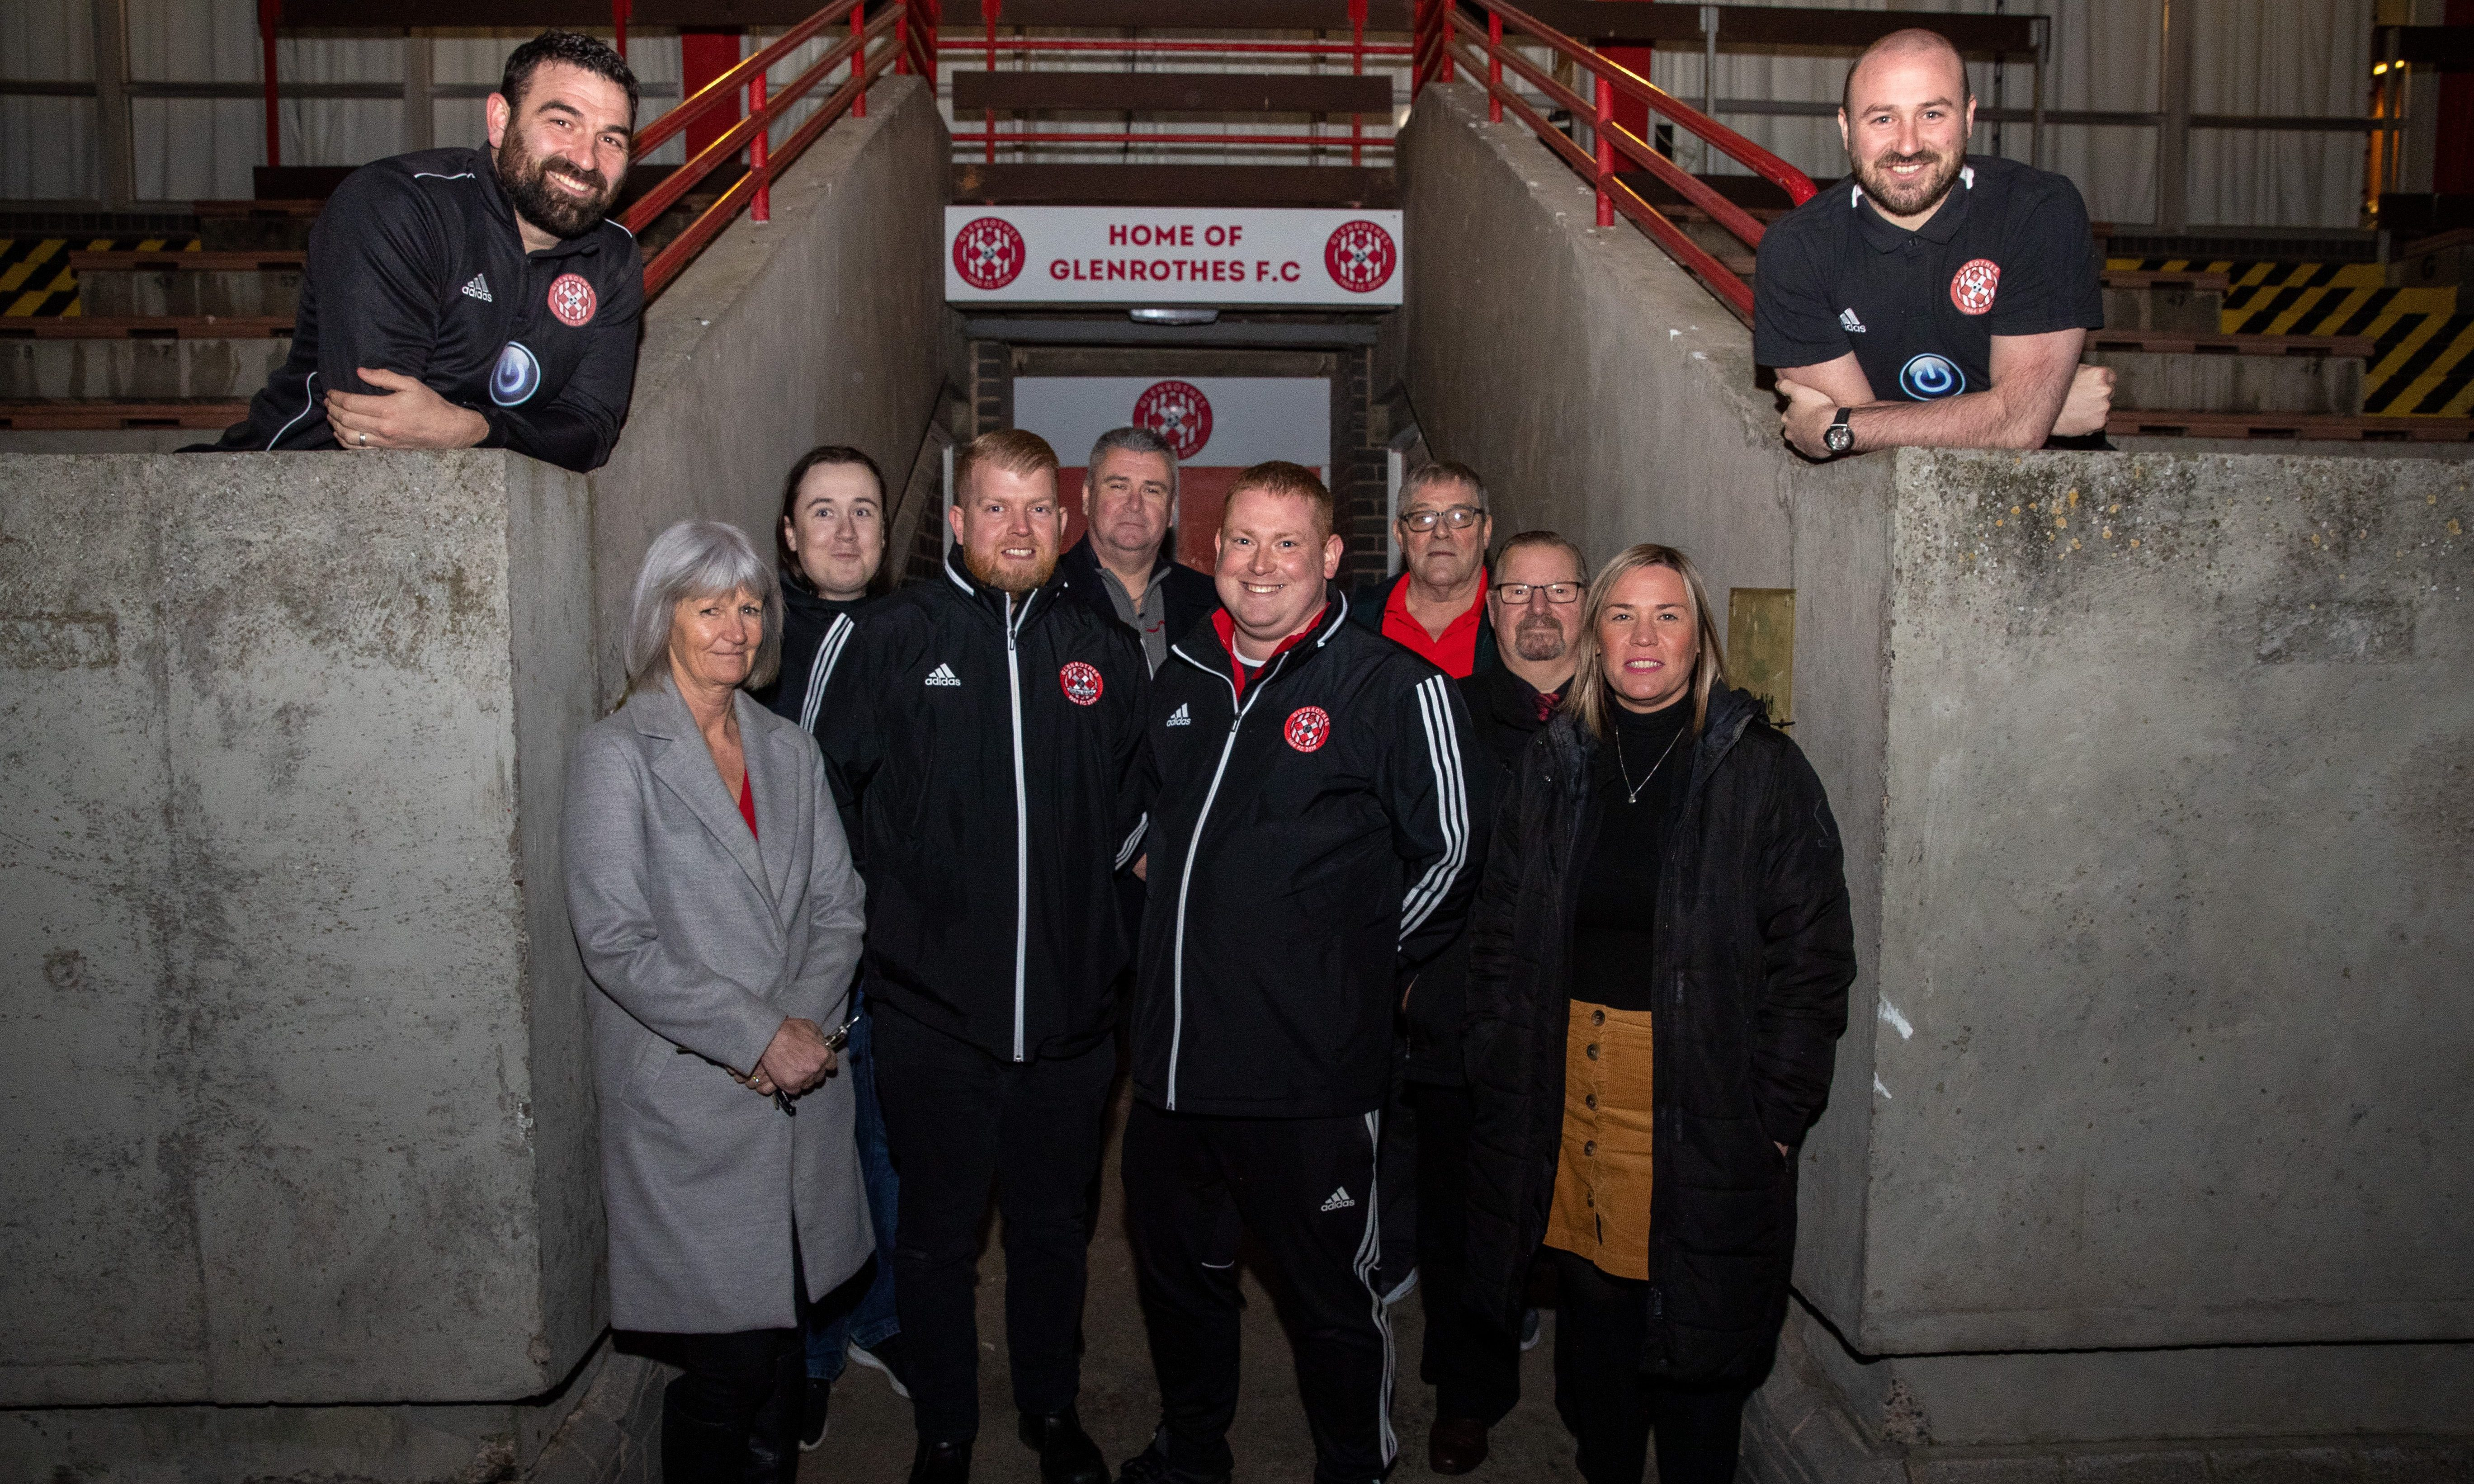 Members of Glenrothes Football Club at the stadium.